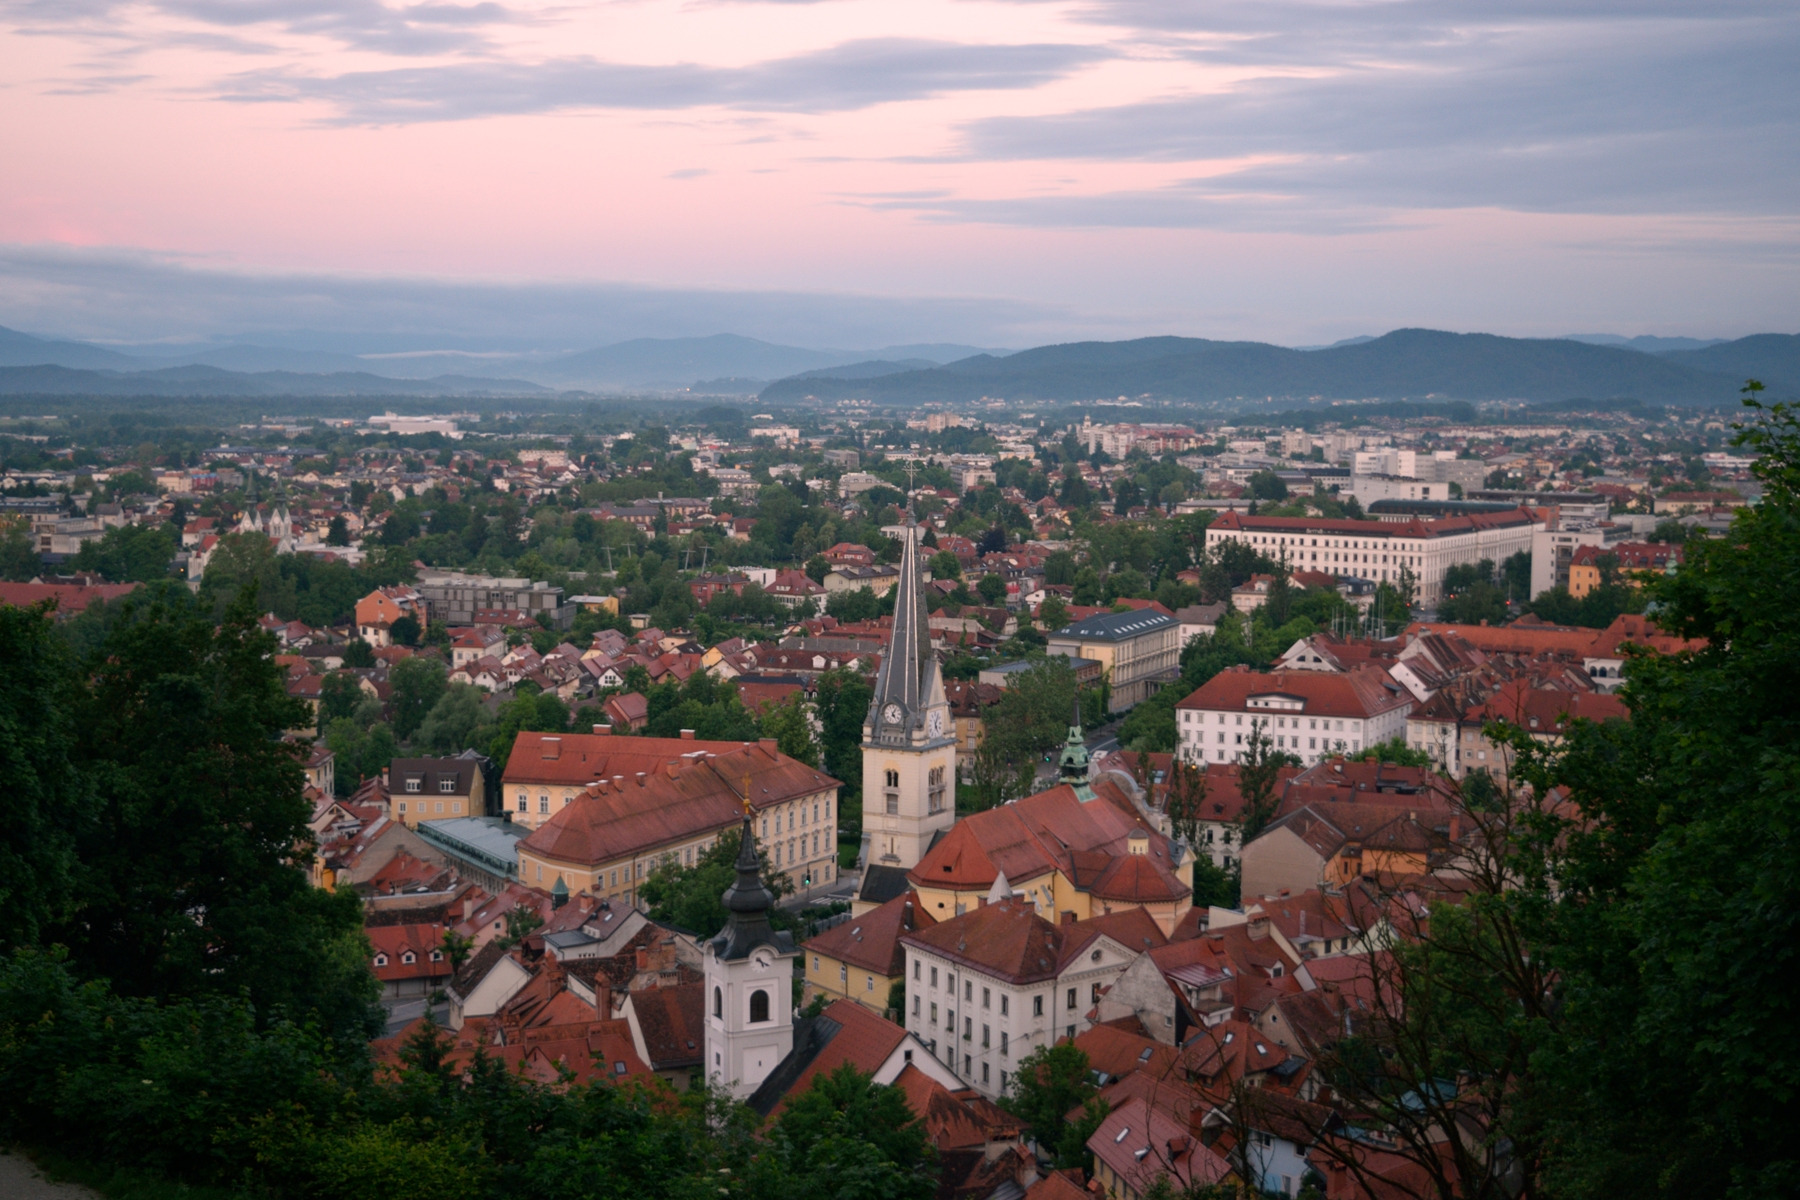 Waking up early to watch the sunrise in Ljubljana, Slovenia.